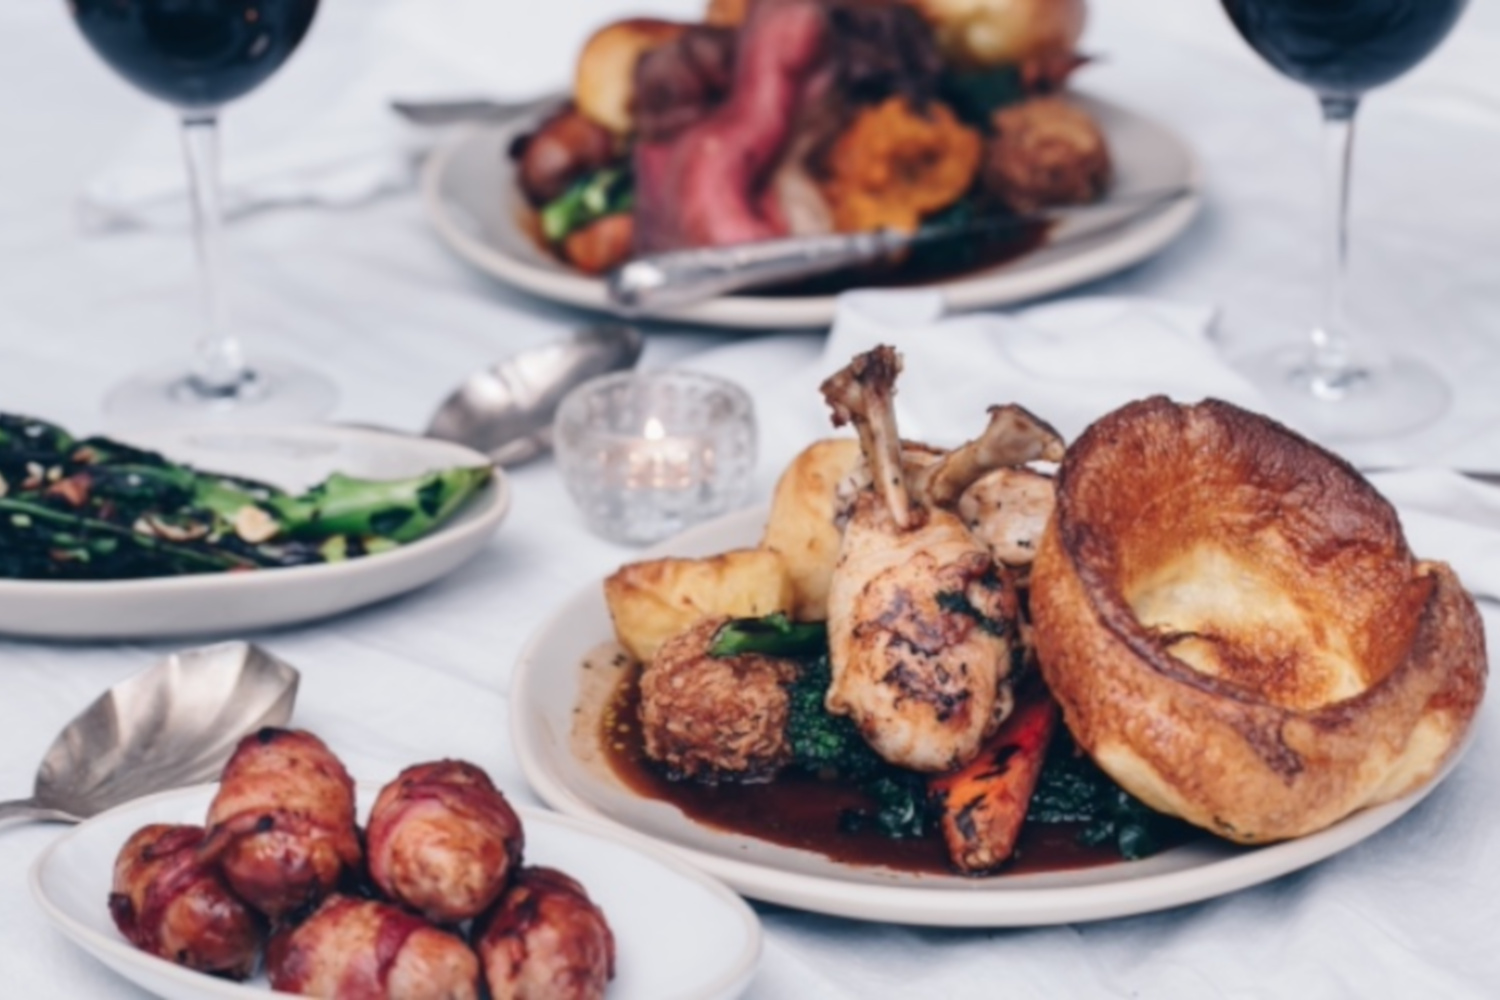 The Crown Sunday Roast dinner